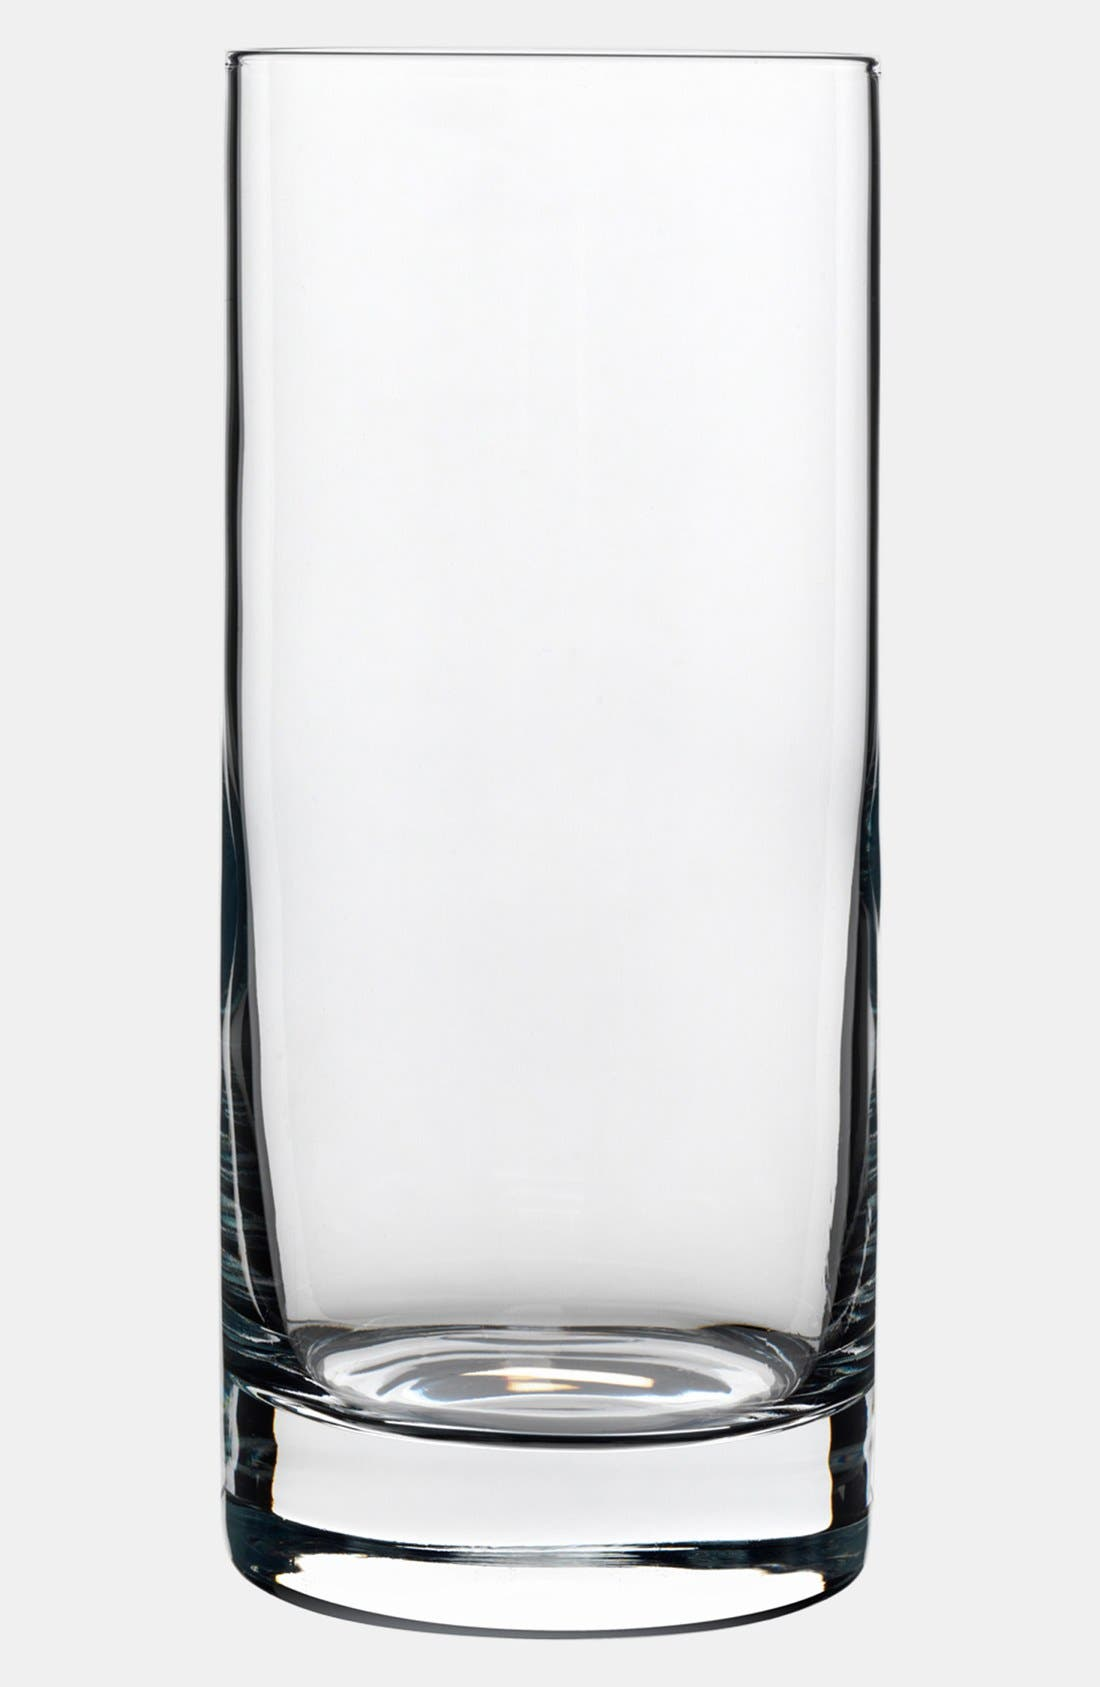 Alternate Image 1 Selected - Luigi Bormioli 'Classico' Tall Tumblers (Set of 4)